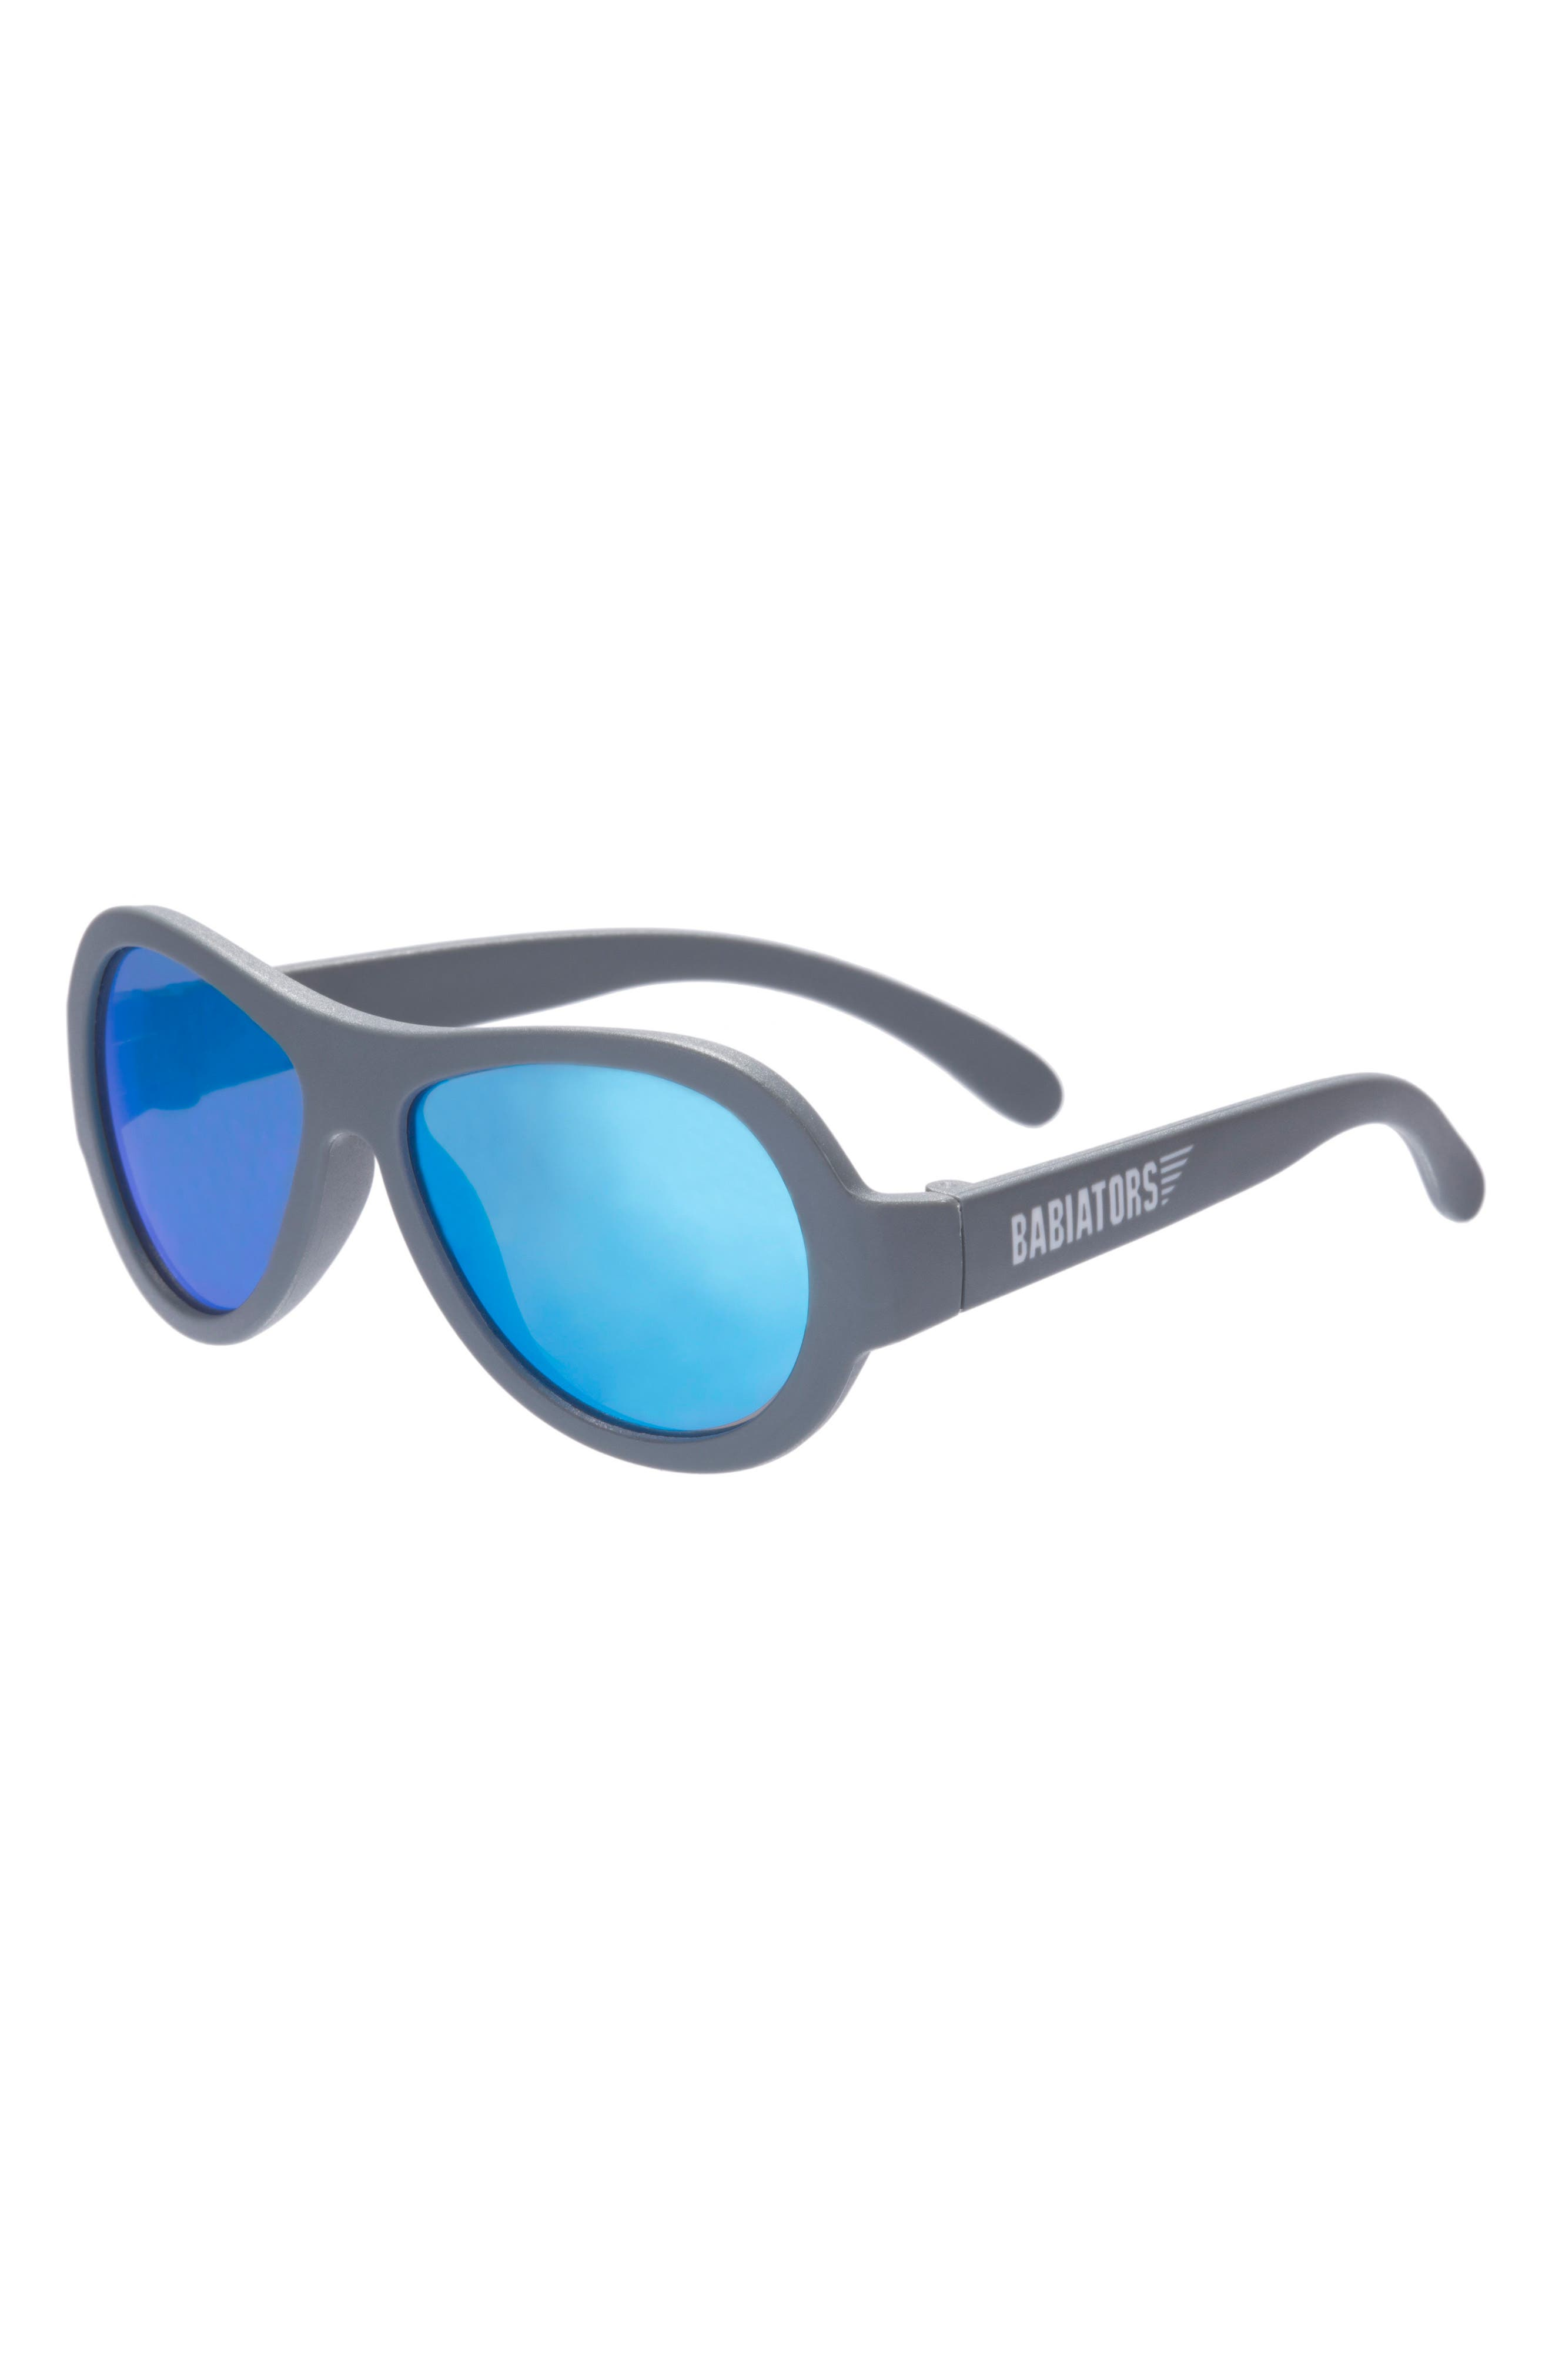 Original Aviator Sunglasses,                             Main thumbnail 1, color,                             BLUE STEEL